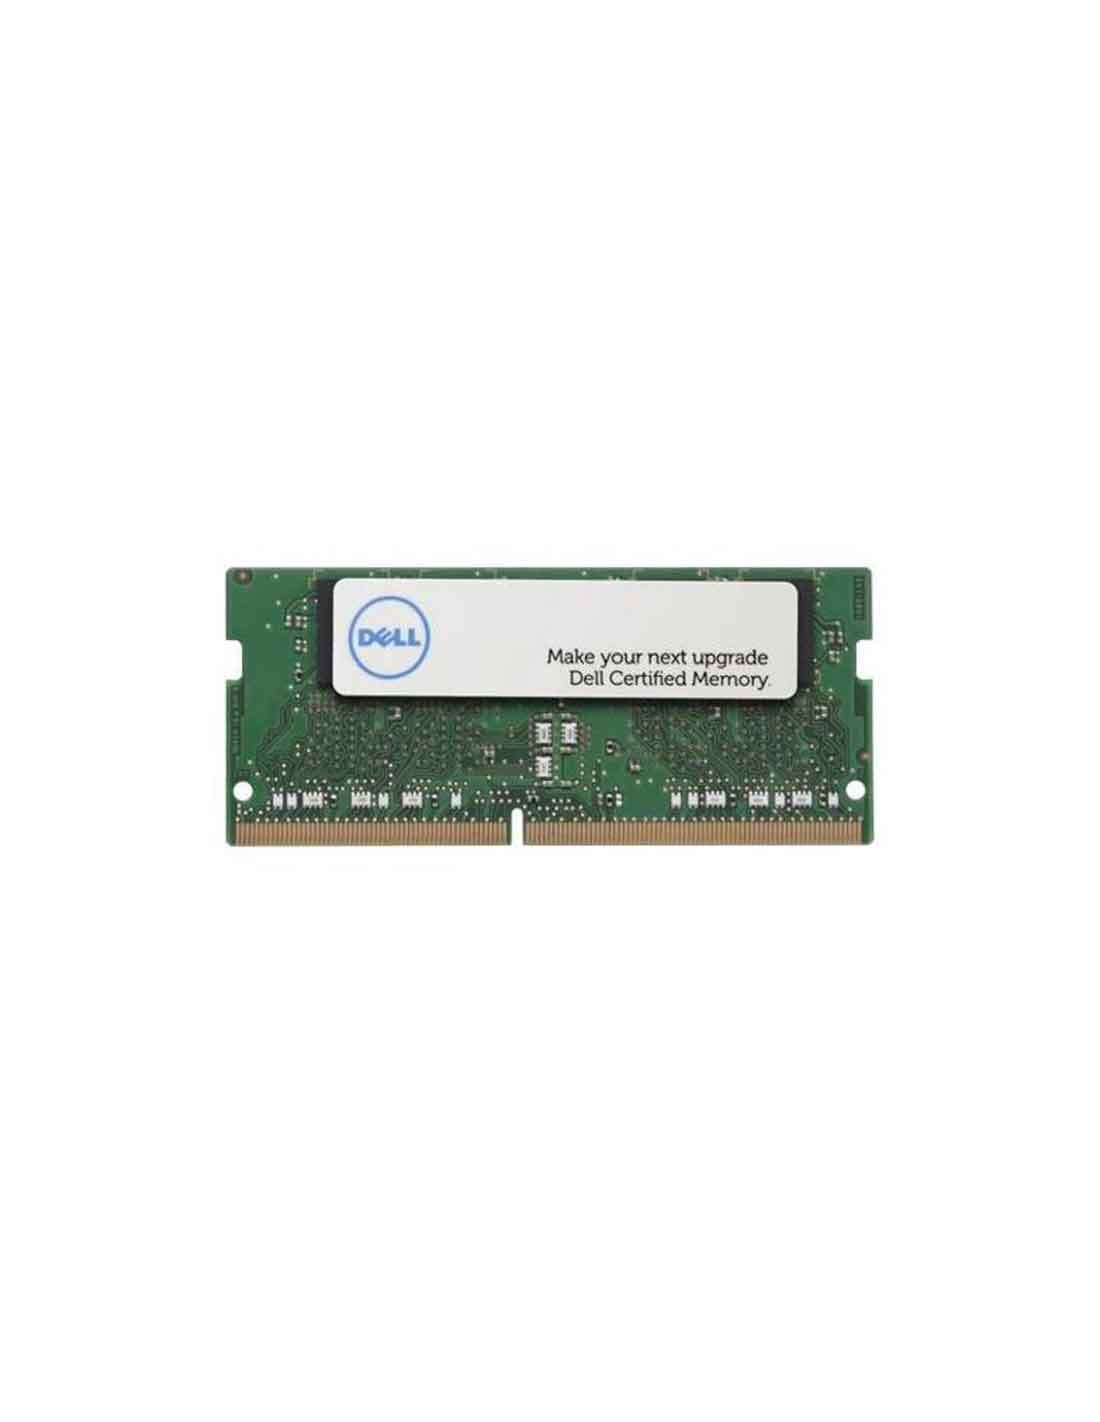 Dell Memory Upgrade 16GB 2RX8 DDR4 SODIMM 2666MHz at a cheap price and fast free delivery in Dubai